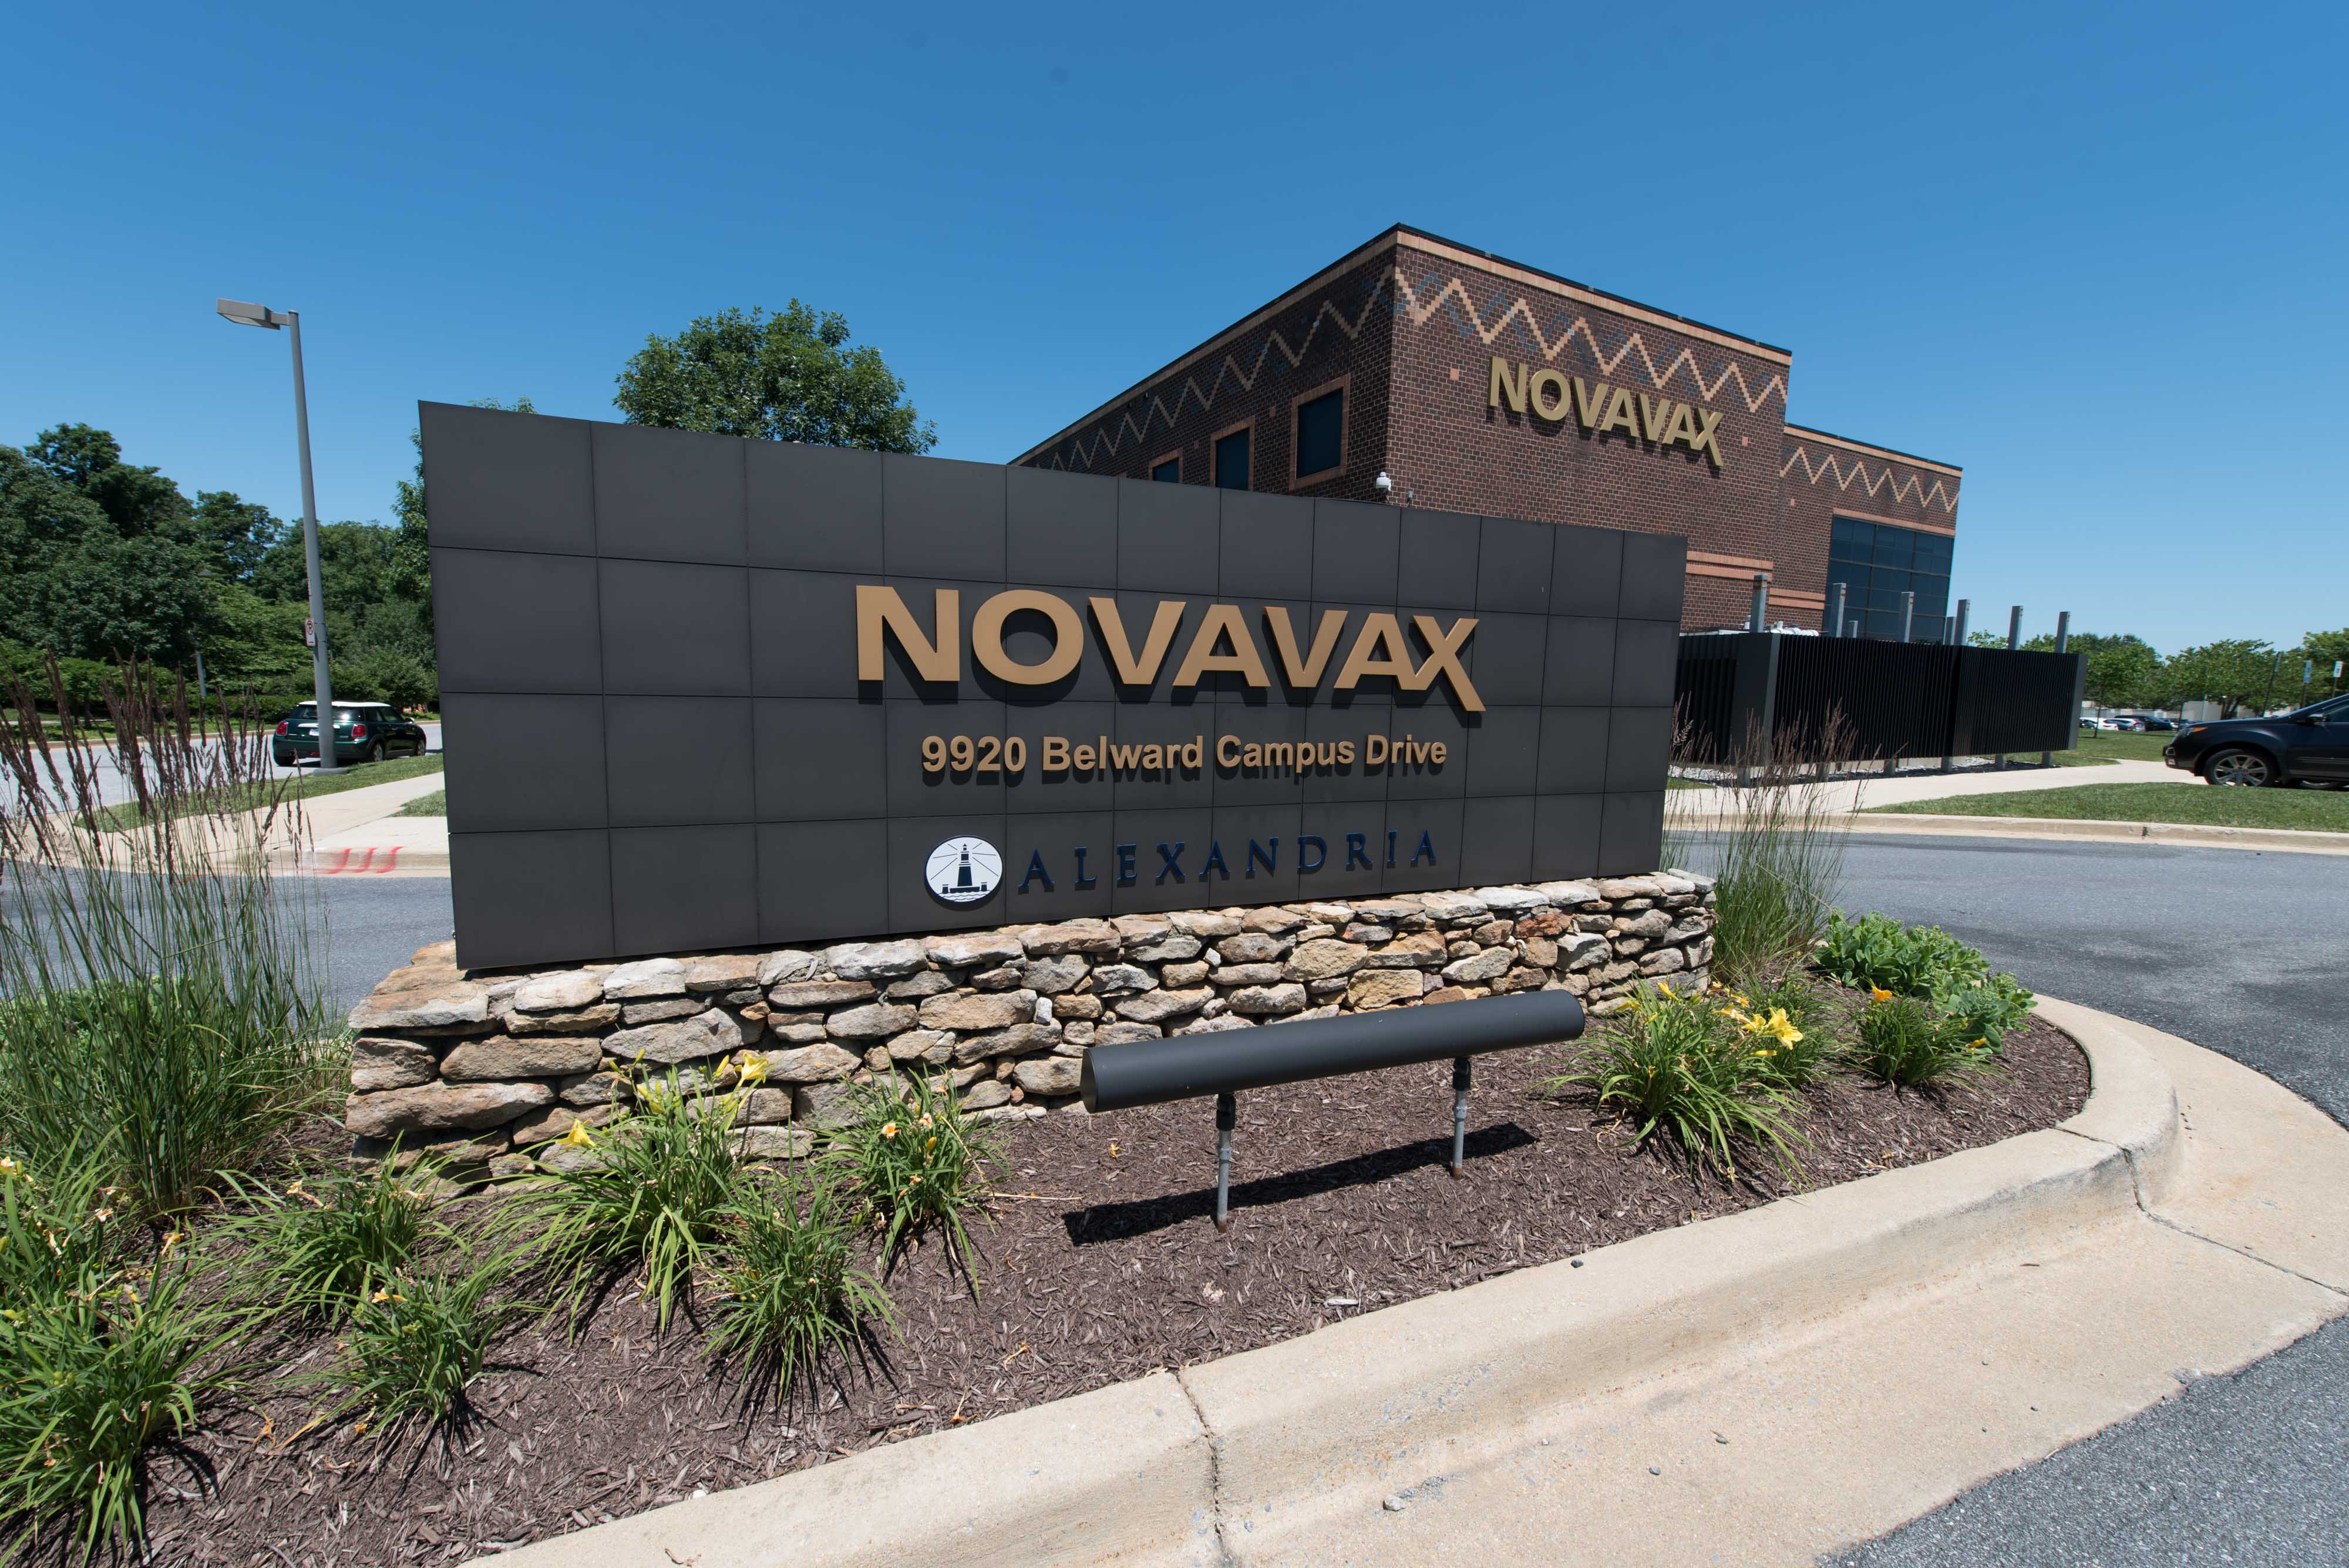 Novavax targets May approval for COVID-19 vaccine in the U.S. - FierceBiotech